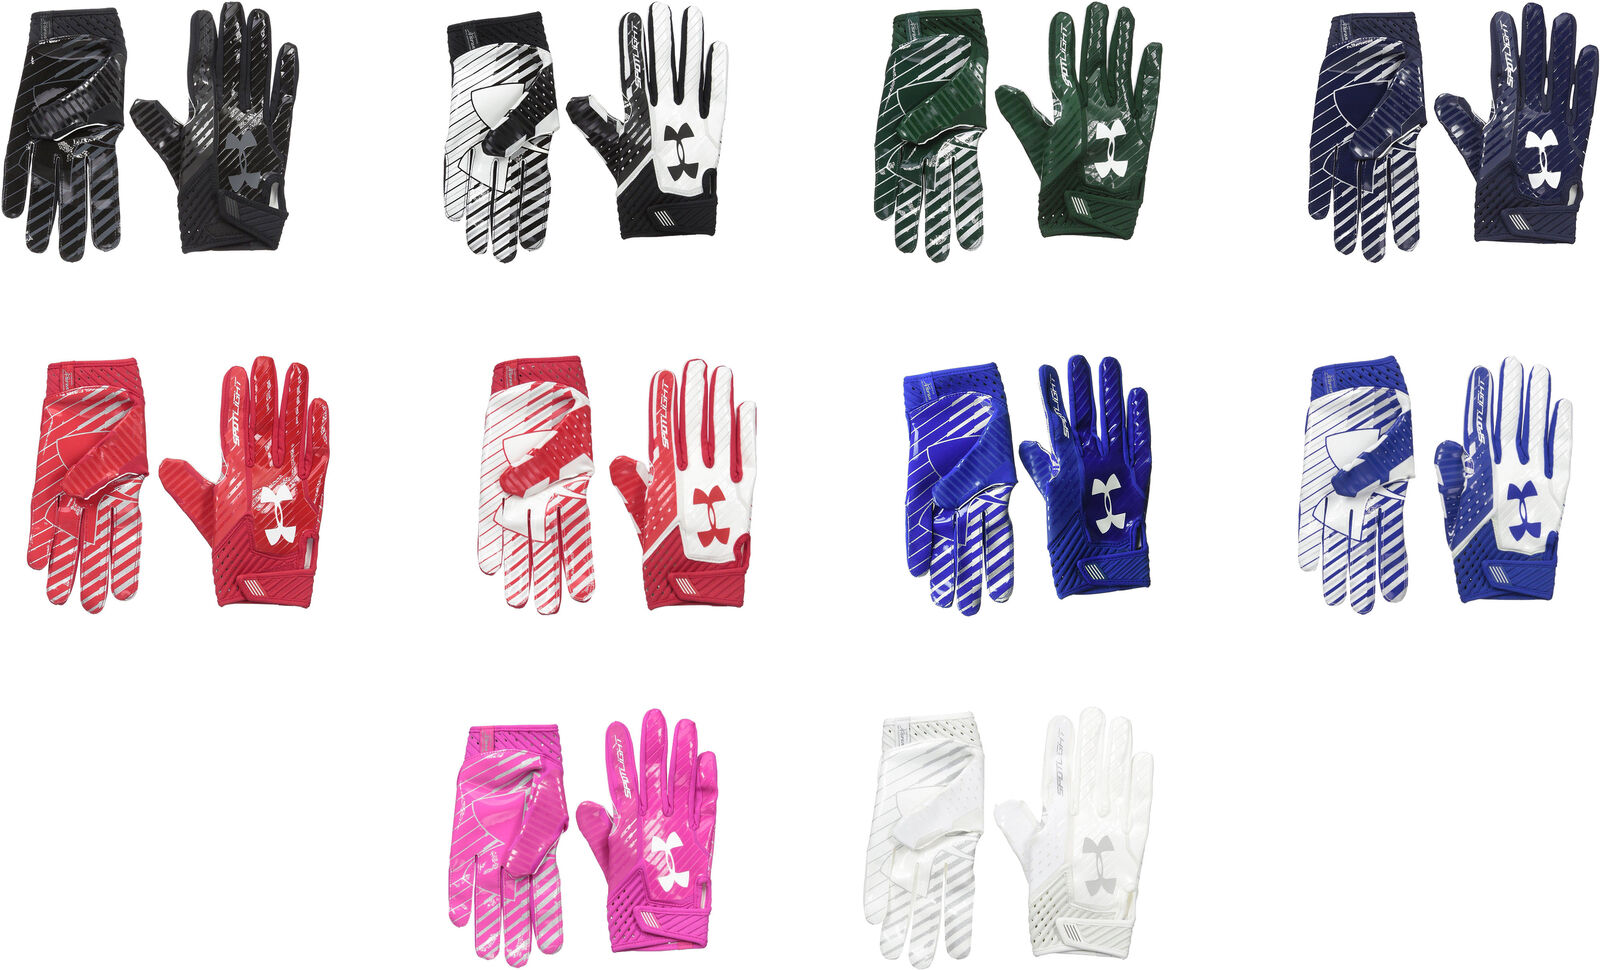 917a36d73f451 Details about Under Armour Men's Spotlight Football Gloves, 10 Colors